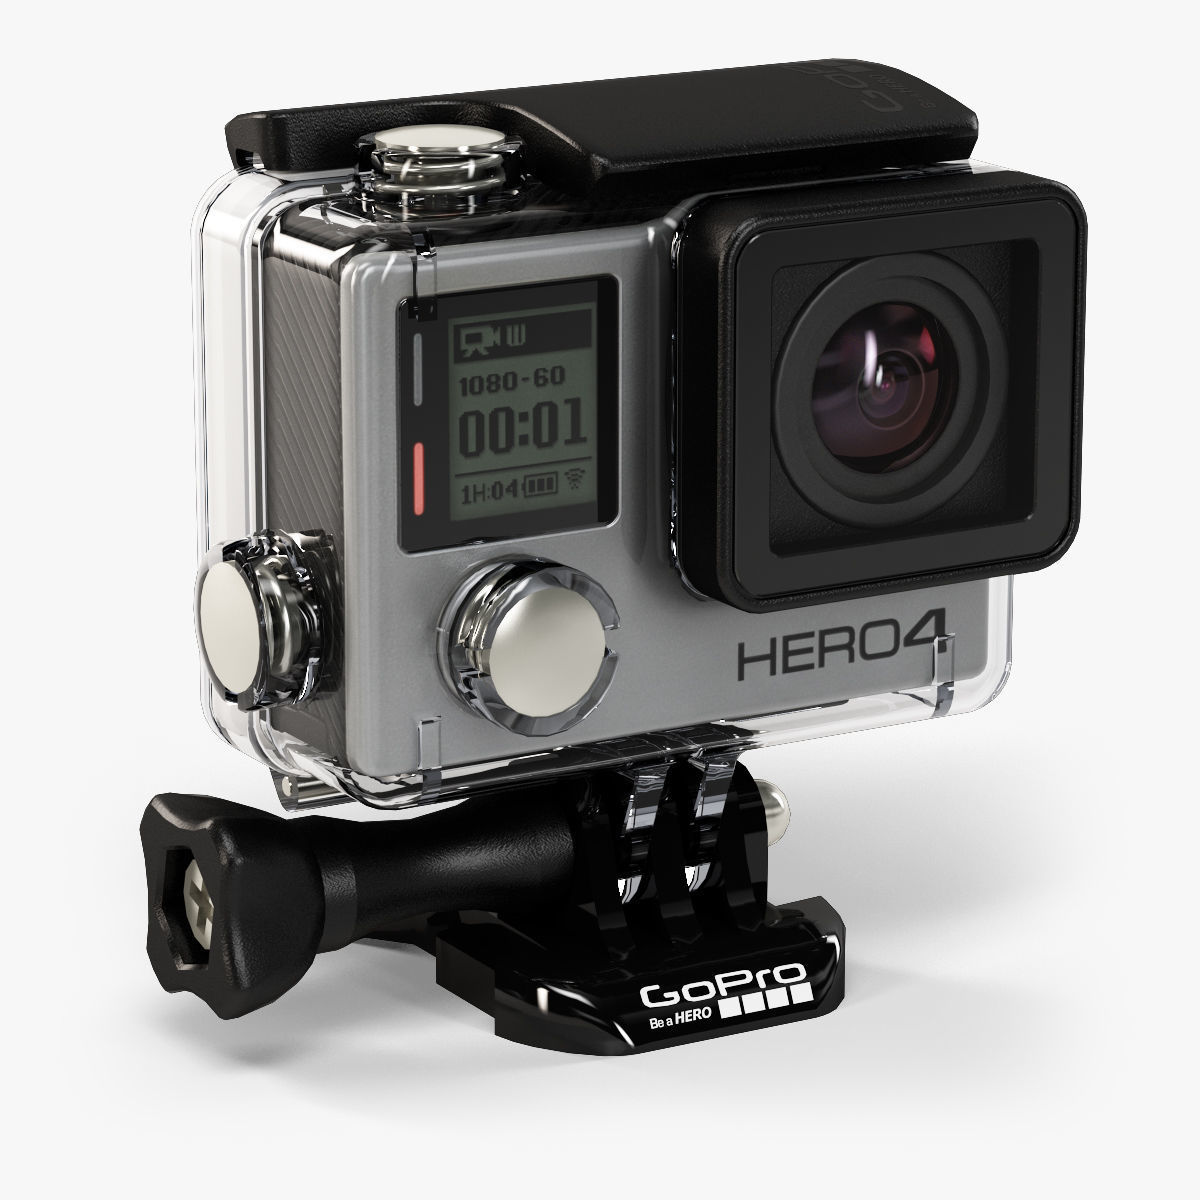 GoPro HERO4 Silver Edition action camera with Waterproof Housing